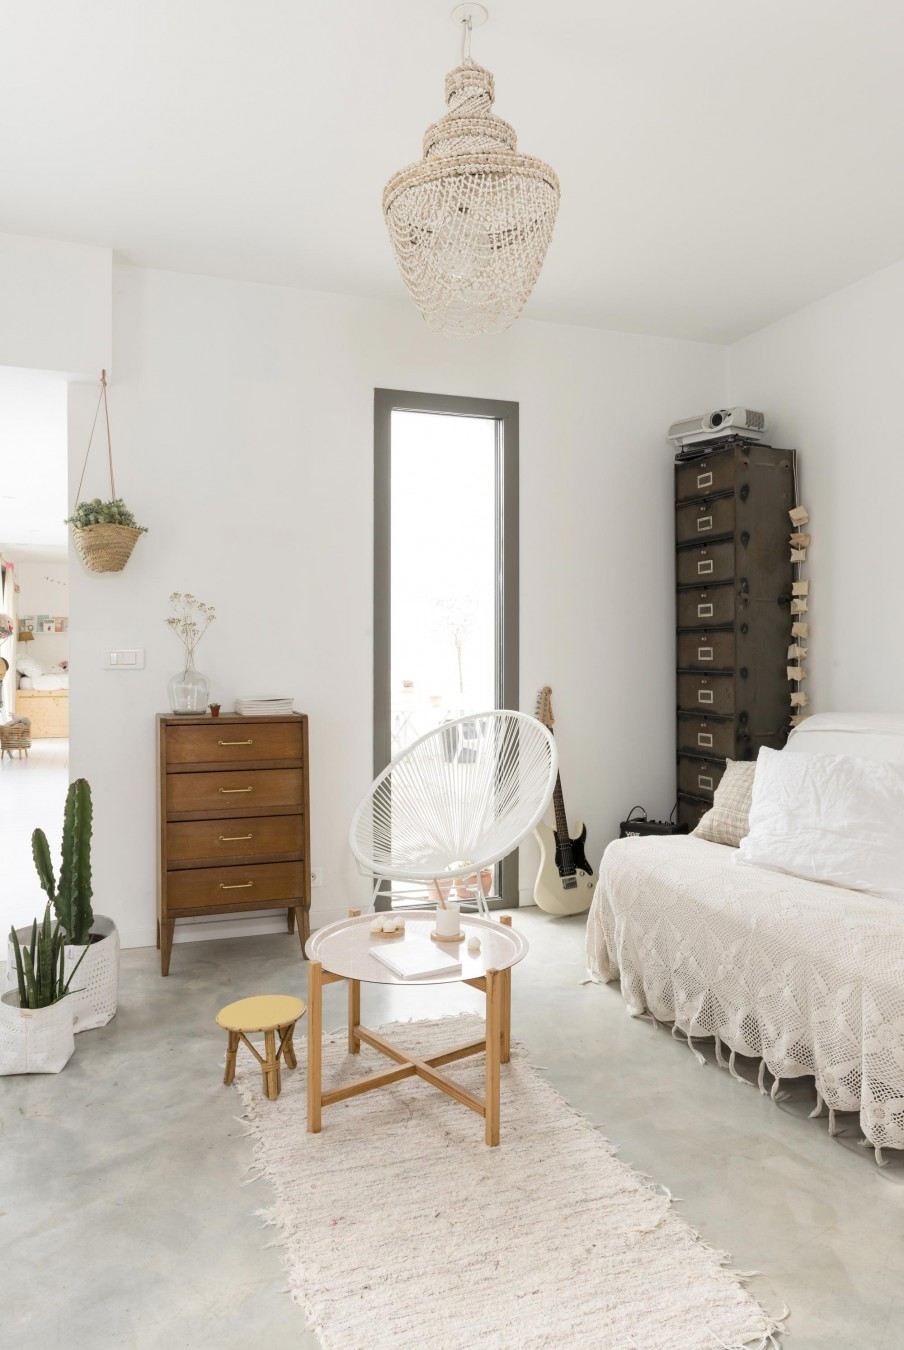 bienvenue dans un int rieur vintage scandinave et diy lili in wonderland. Black Bedroom Furniture Sets. Home Design Ideas